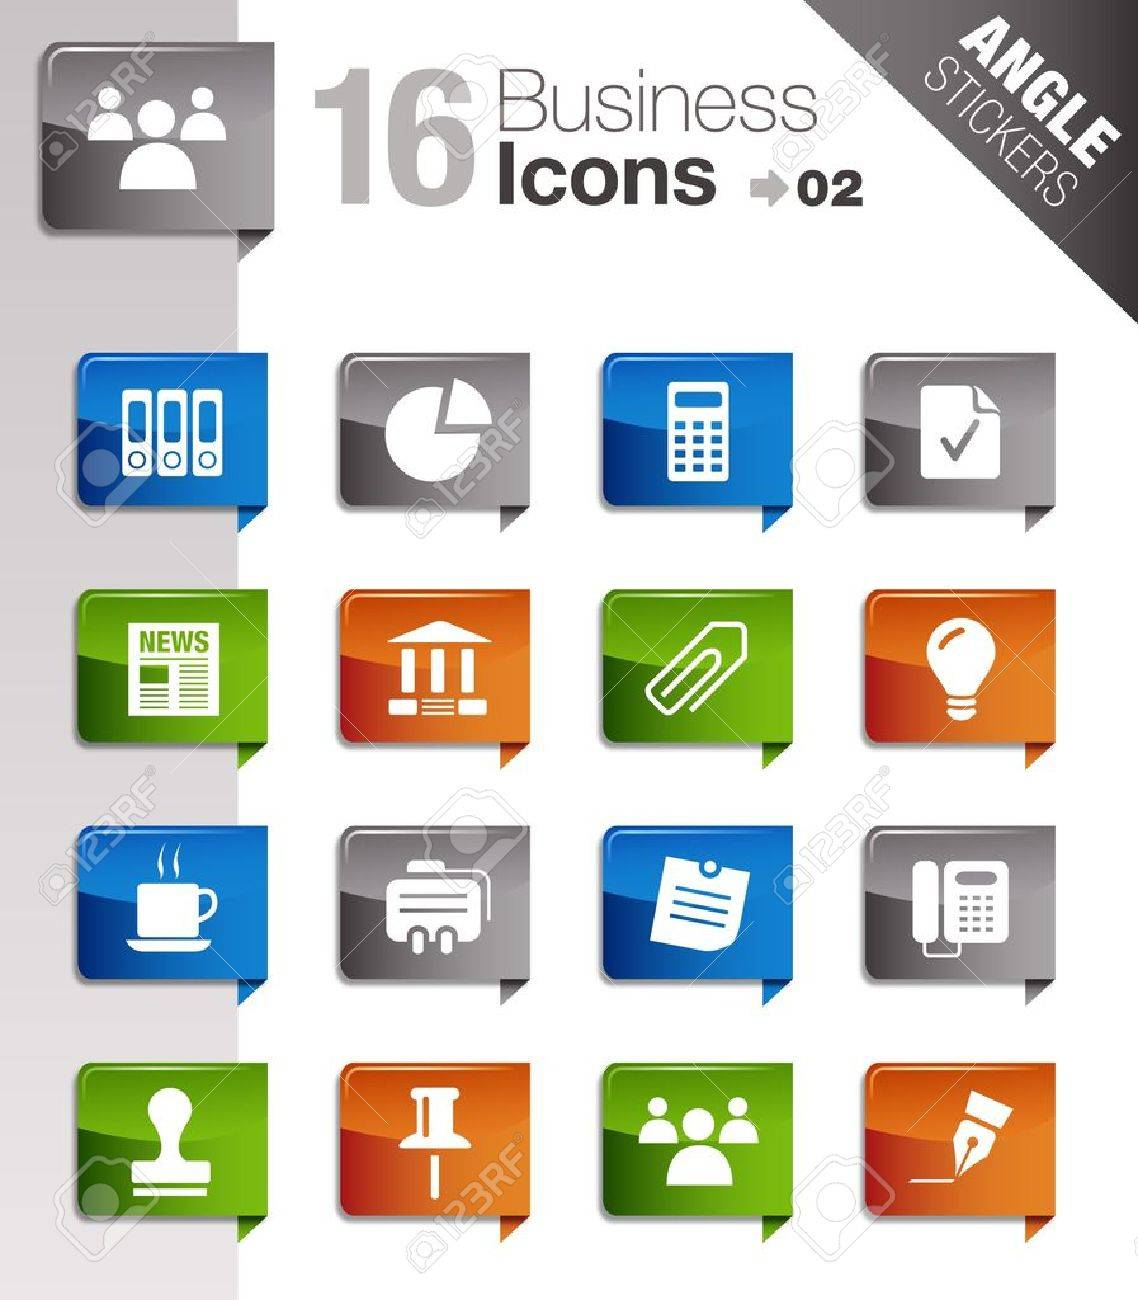 Angle Stickers - Office and Business icons Stock Vector - 10443967